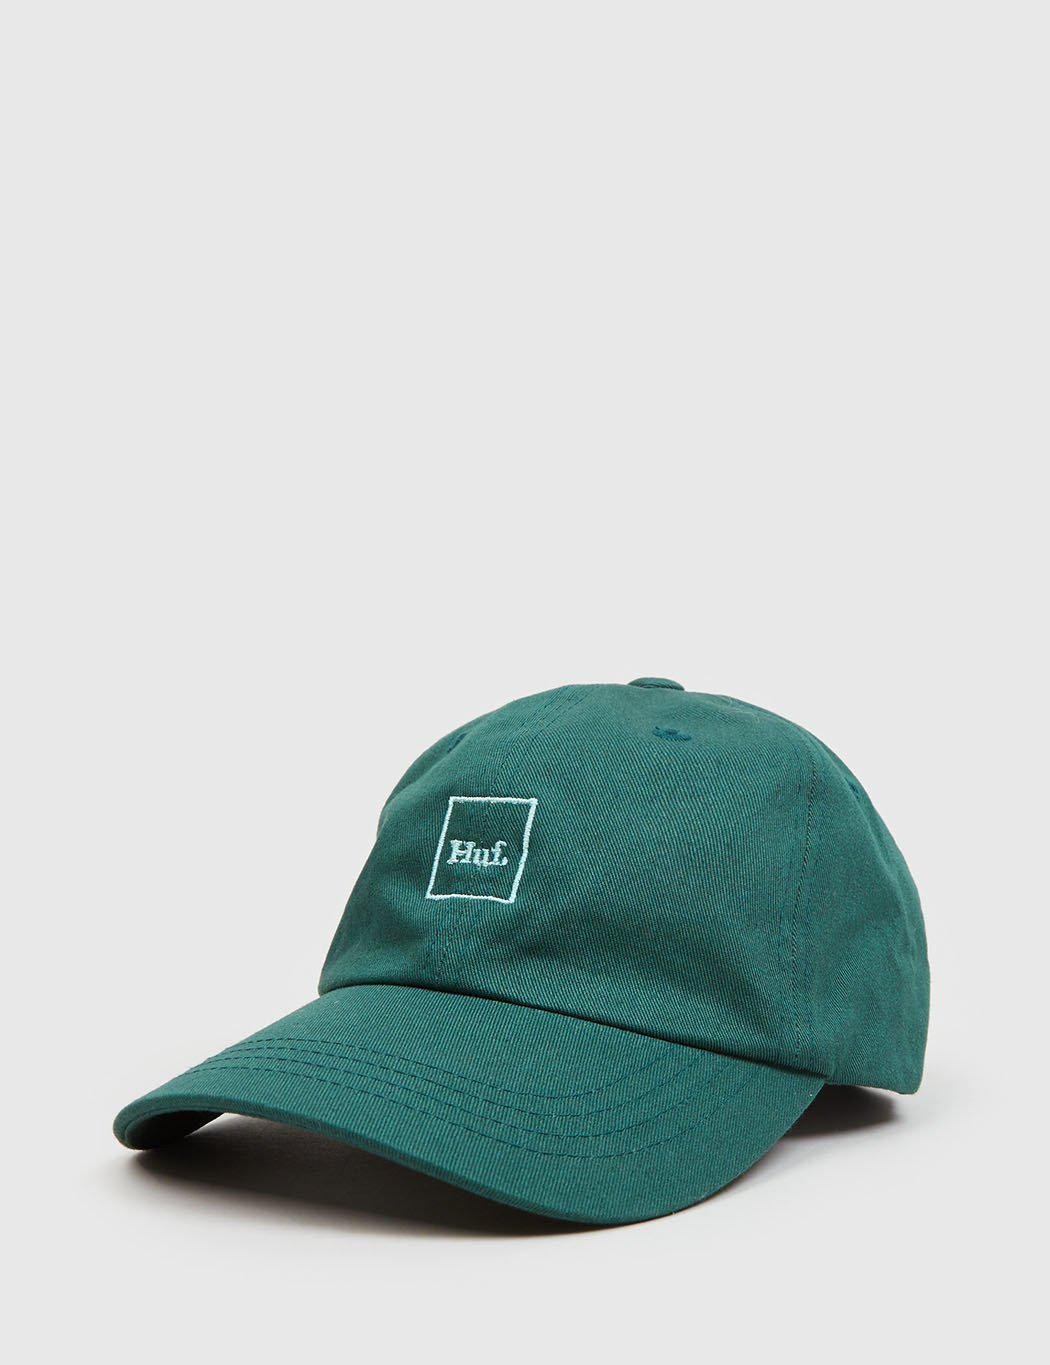 2181f283 Lyst - Huf Domestic Logo Curved Peak Cap in Green for Men